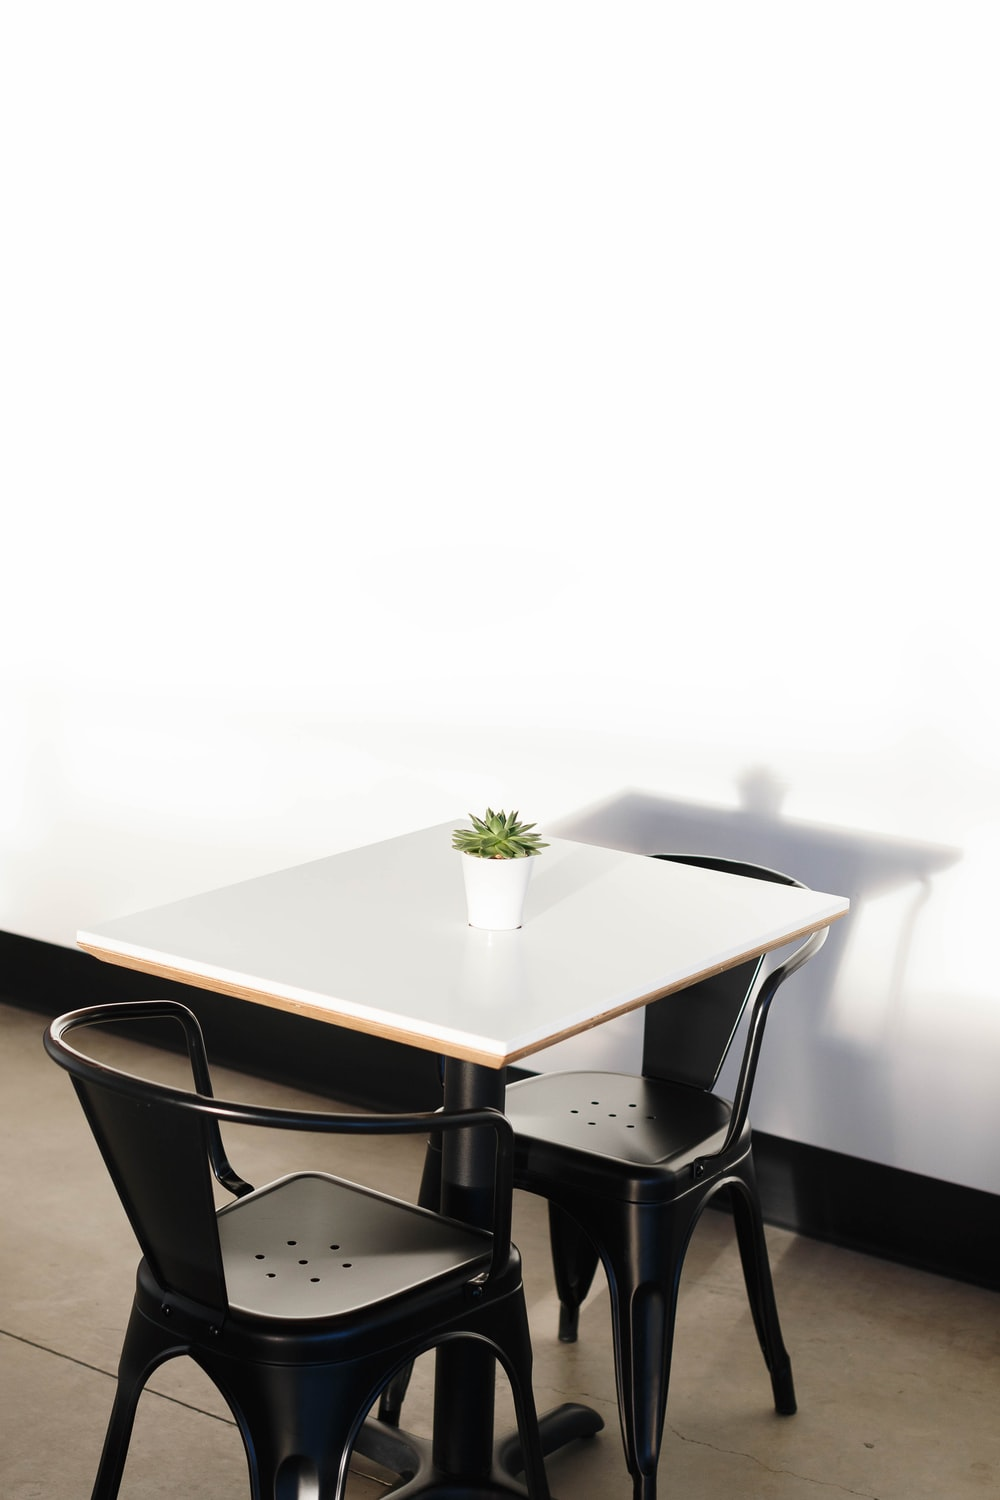 square white wooden table with two black chairs